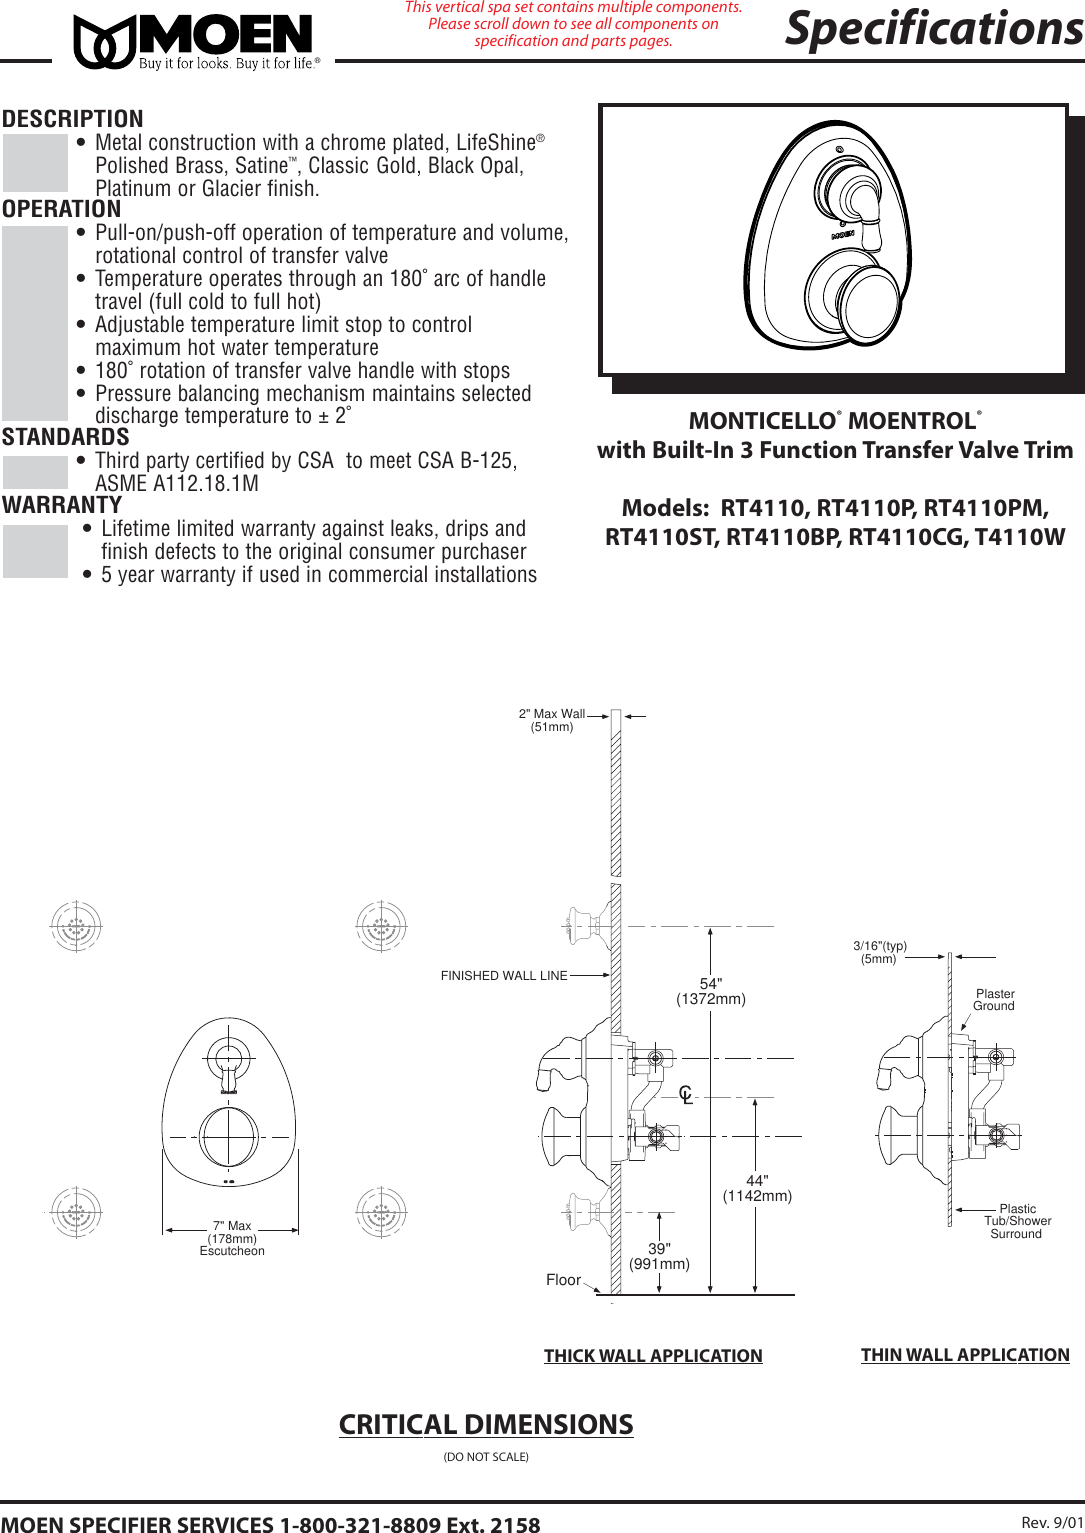 Moen Monticello Rt4110Cg Users Manual 243PMC